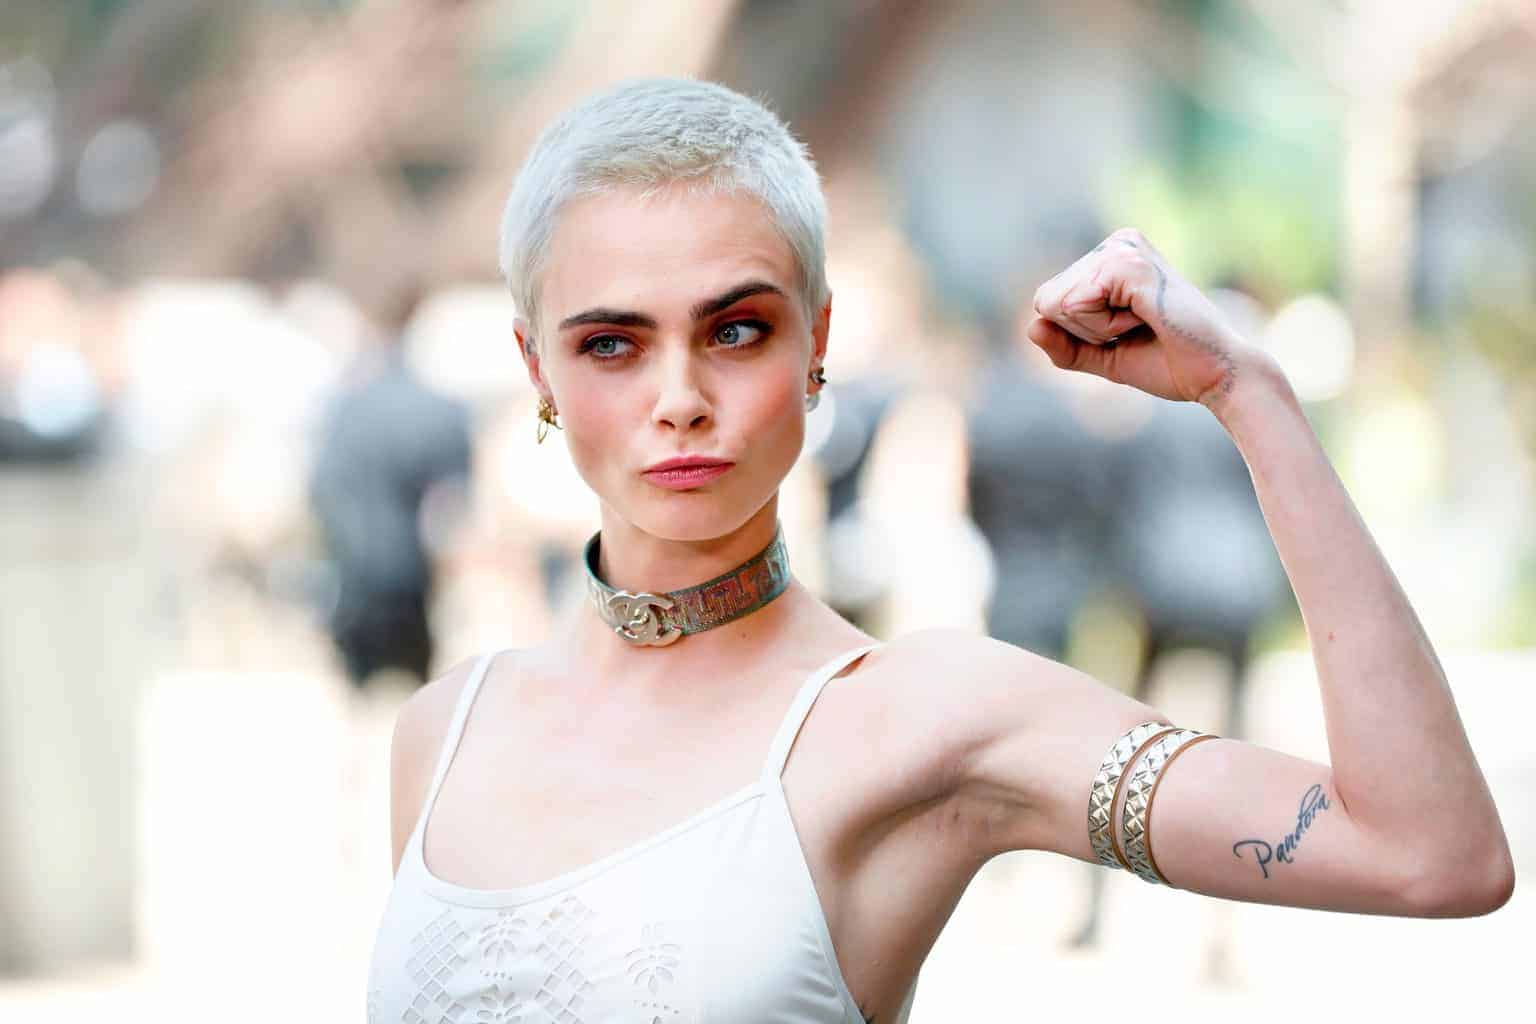 French women persecuted with shaved heads